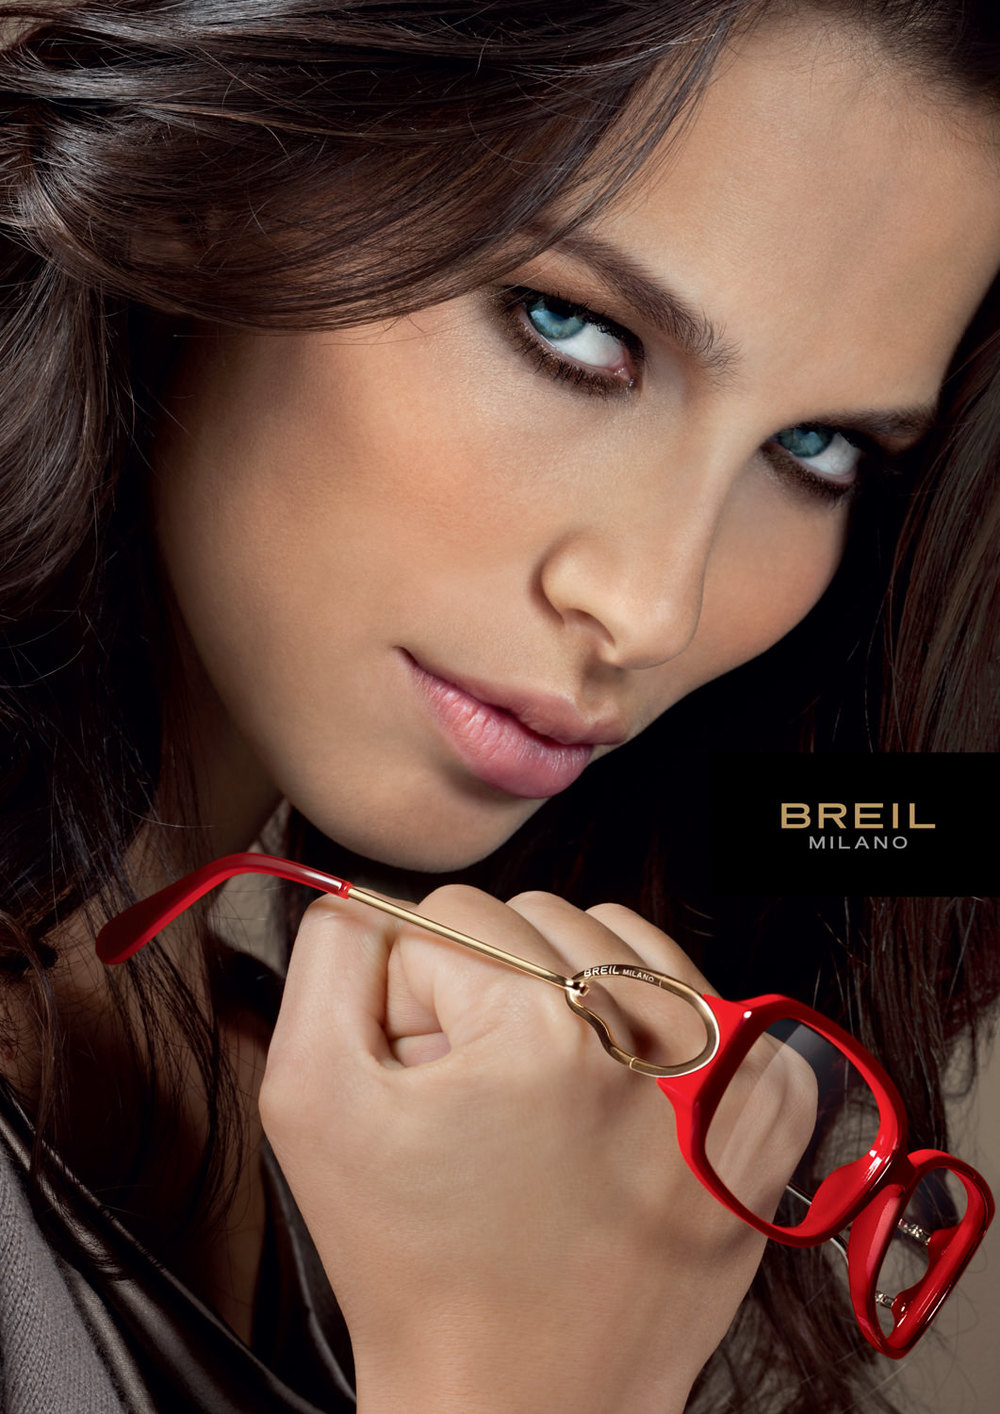 Portfolio_Advertising_Breil_EyeWearRed_2009.jpg